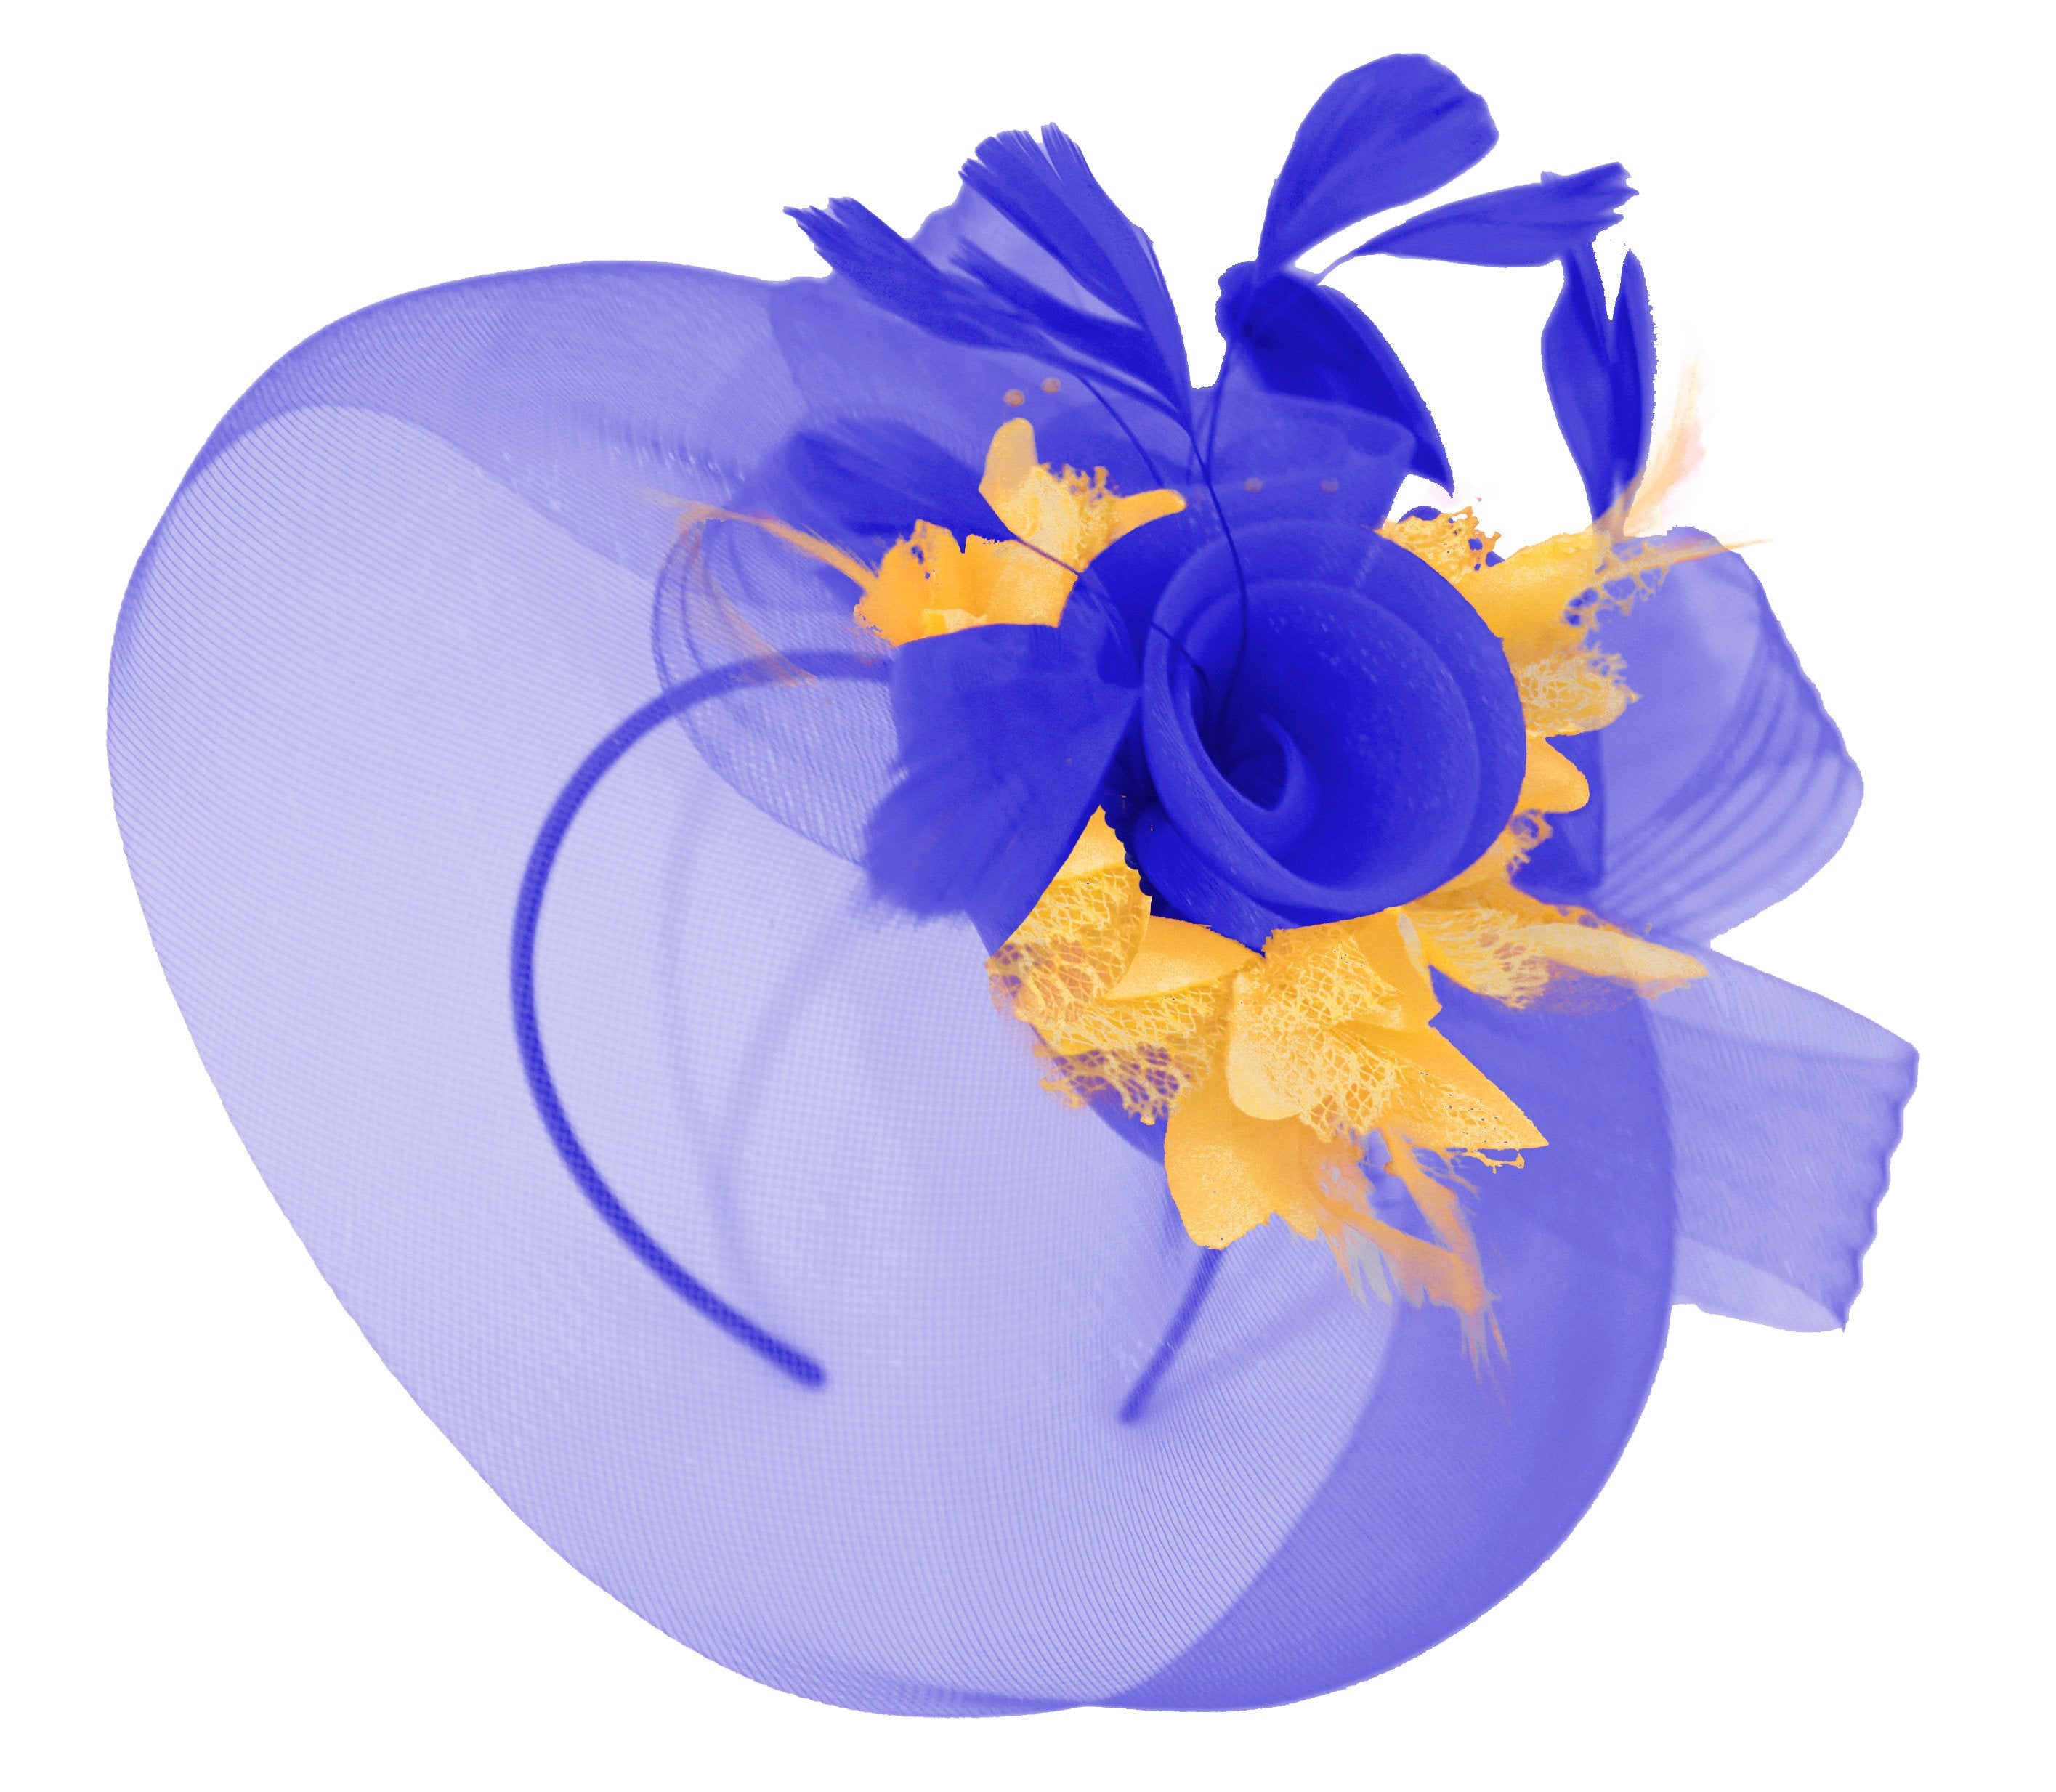 Caprilite Big Royal Blue and Gold Fascinator Hat Veil Net Hair Clip Ascot Derby Races Wedding Headband Feather Flower